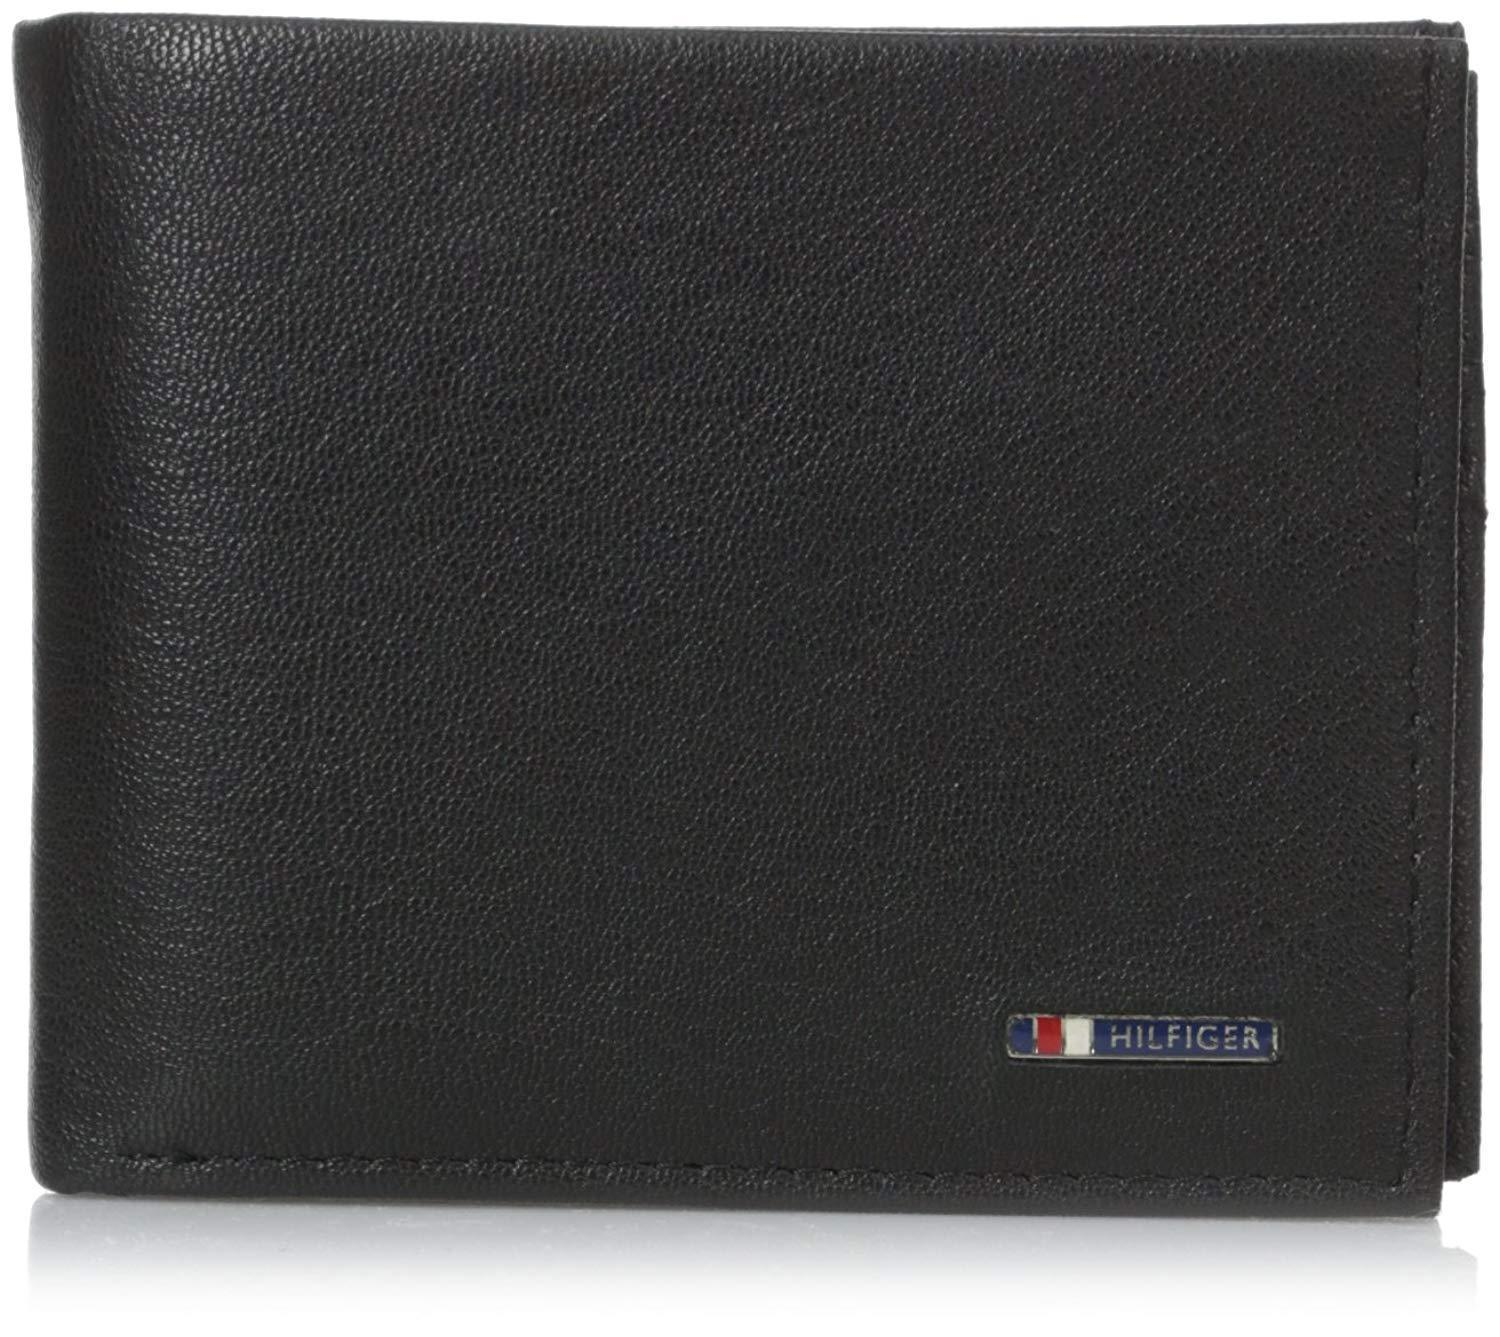 Tommy Hilfiger Men's Black Leather Passcase Credit Card Wallet 31TL22X106